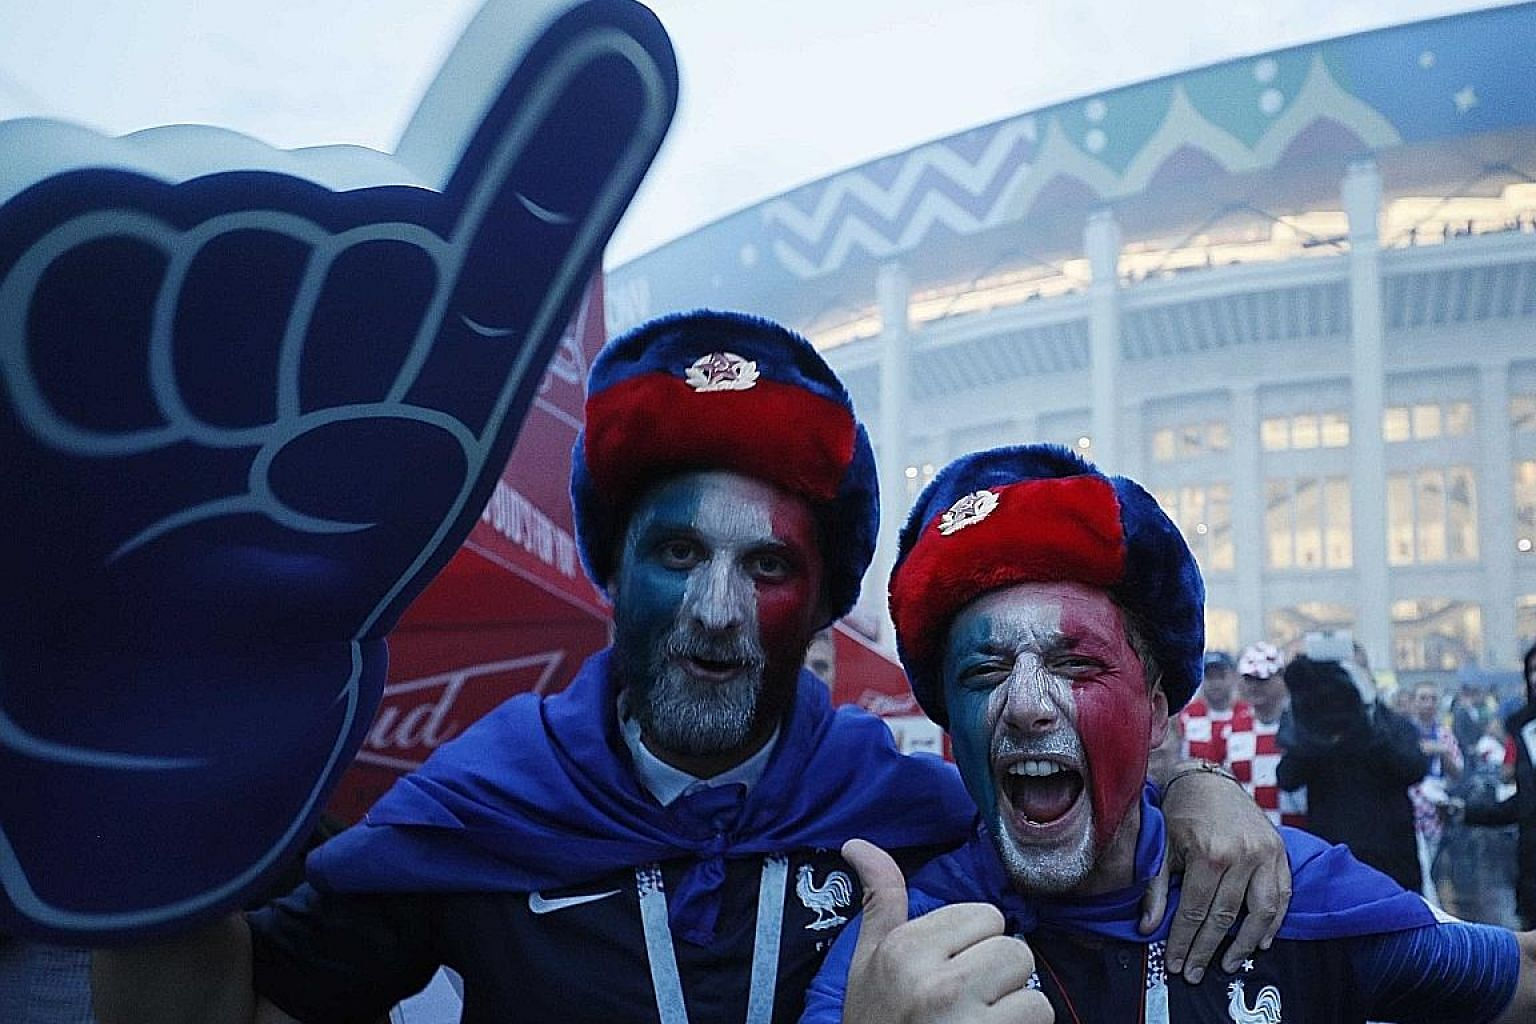 Ecstatic French supporters outside the Luzhniki Stadium after the final.